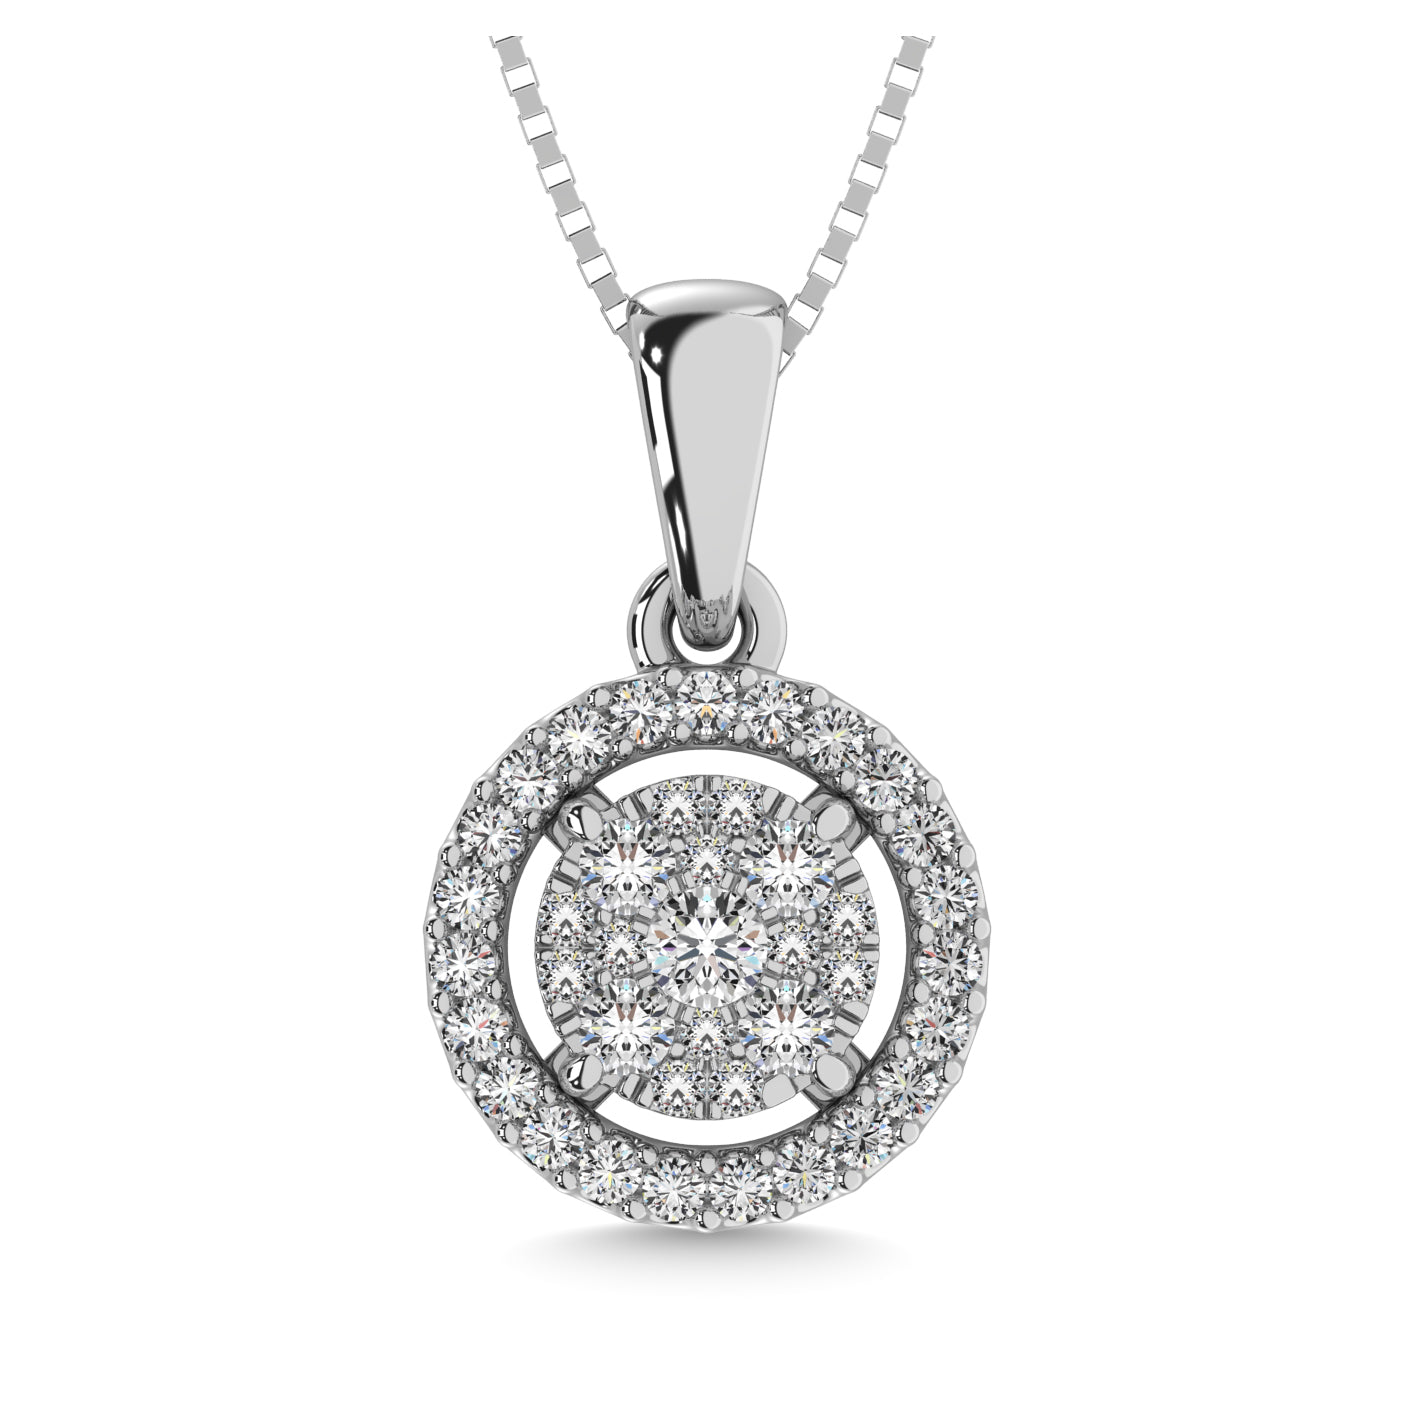 Diamond Halo Pendant Round Cut 0.25 Carats 10KT White Gold with Chain